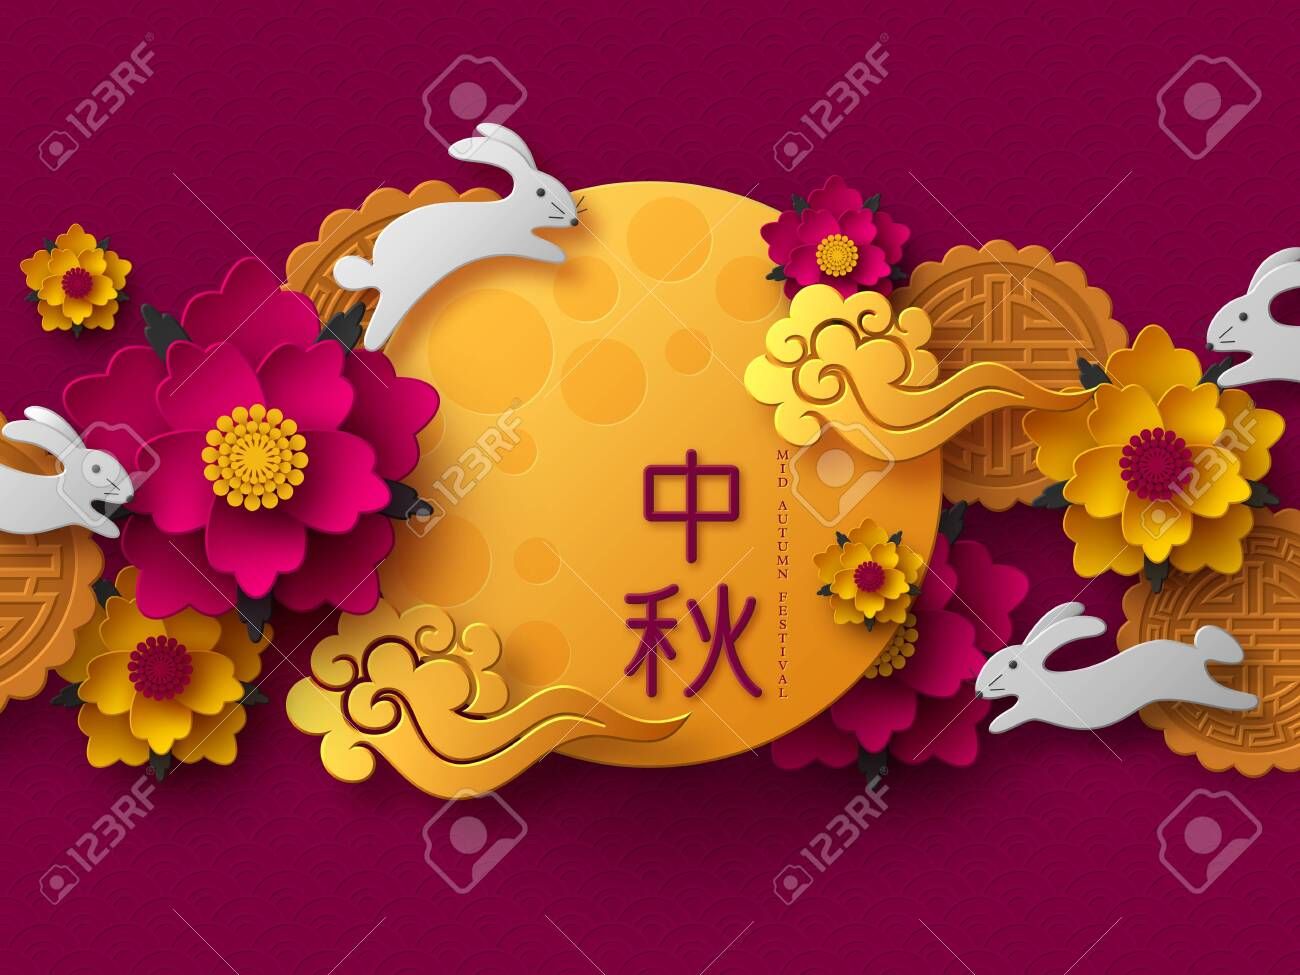 Chinese Mid Autumn festival design. 3d paper cut moon, flowers, mooncakes, rabbits and clouds. Purple traditional pattern. Translation - Mid Autumn. Vector illustration. - 126880888